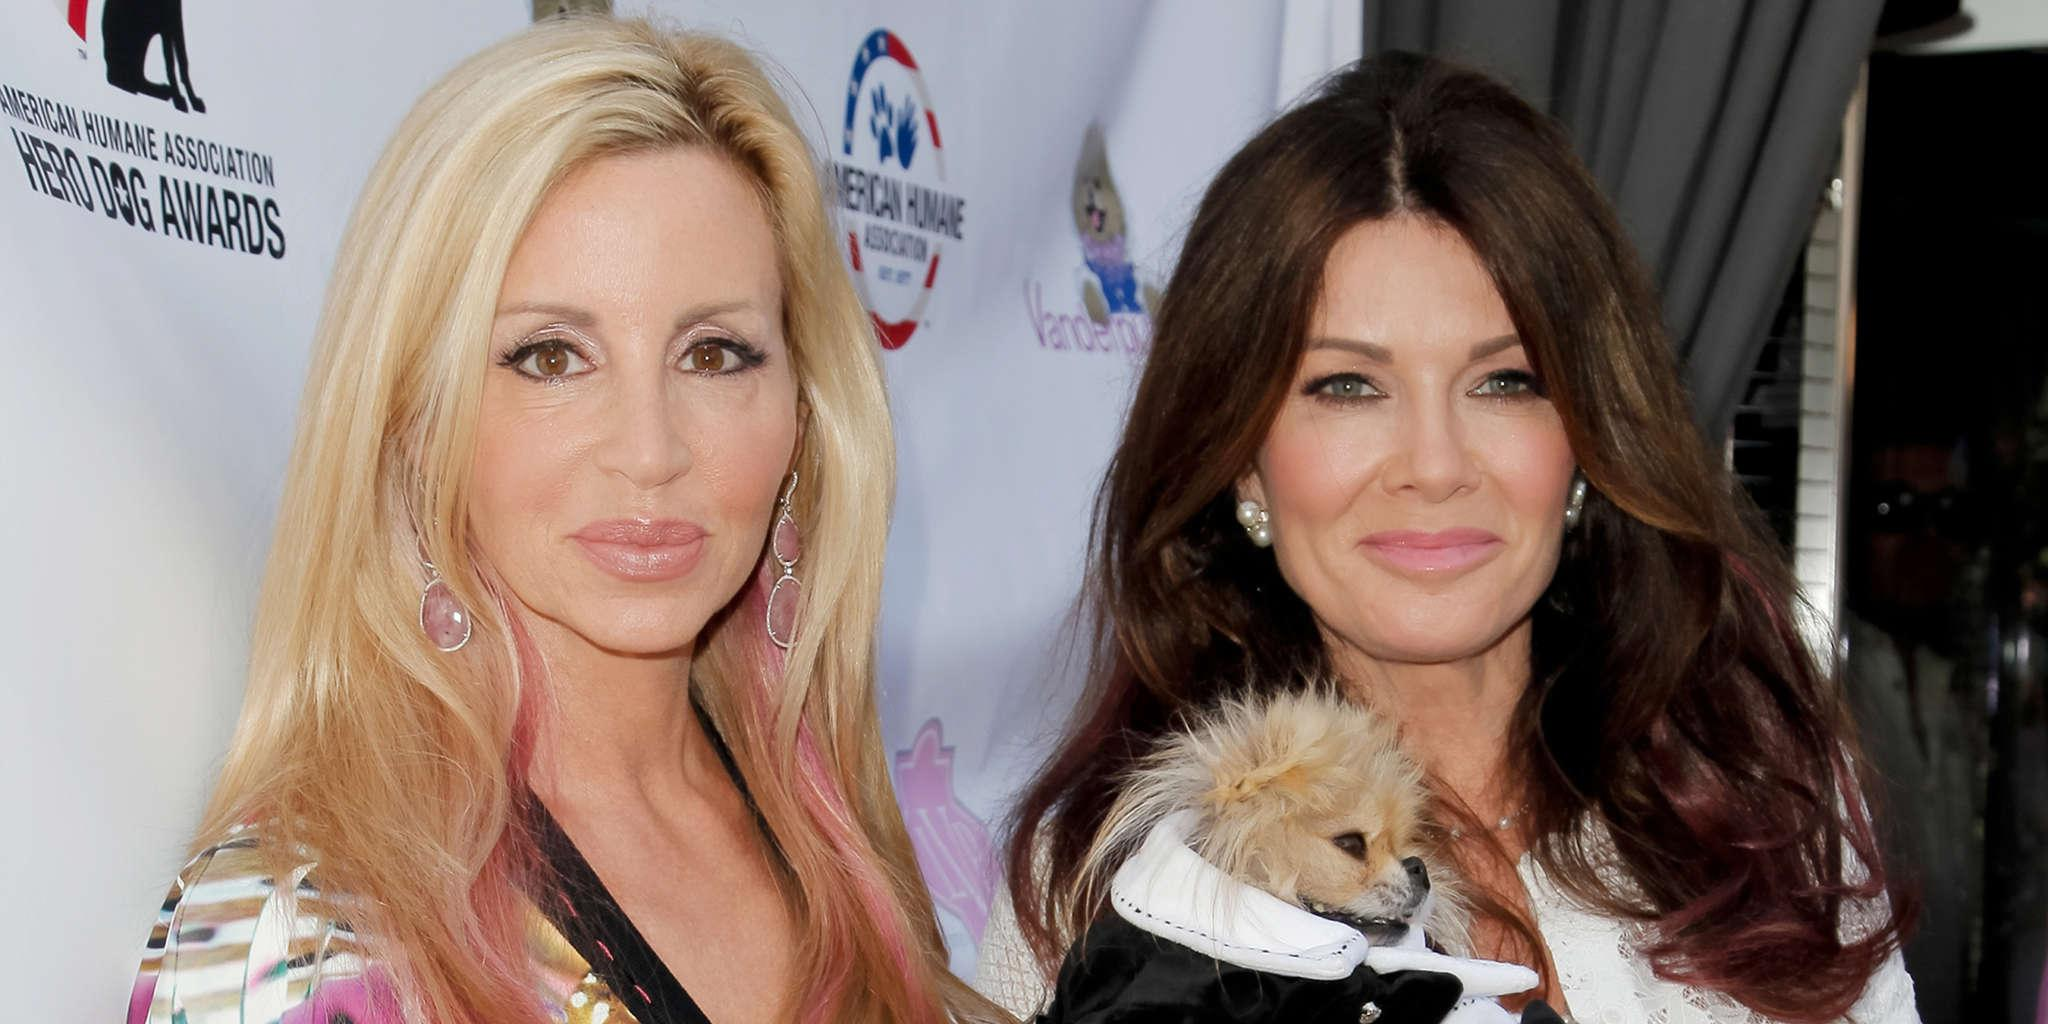 Lisa Vanderpump Says She Thought Camille Grammer Was Done With RHOBH - She Was Surprised By Her Return!